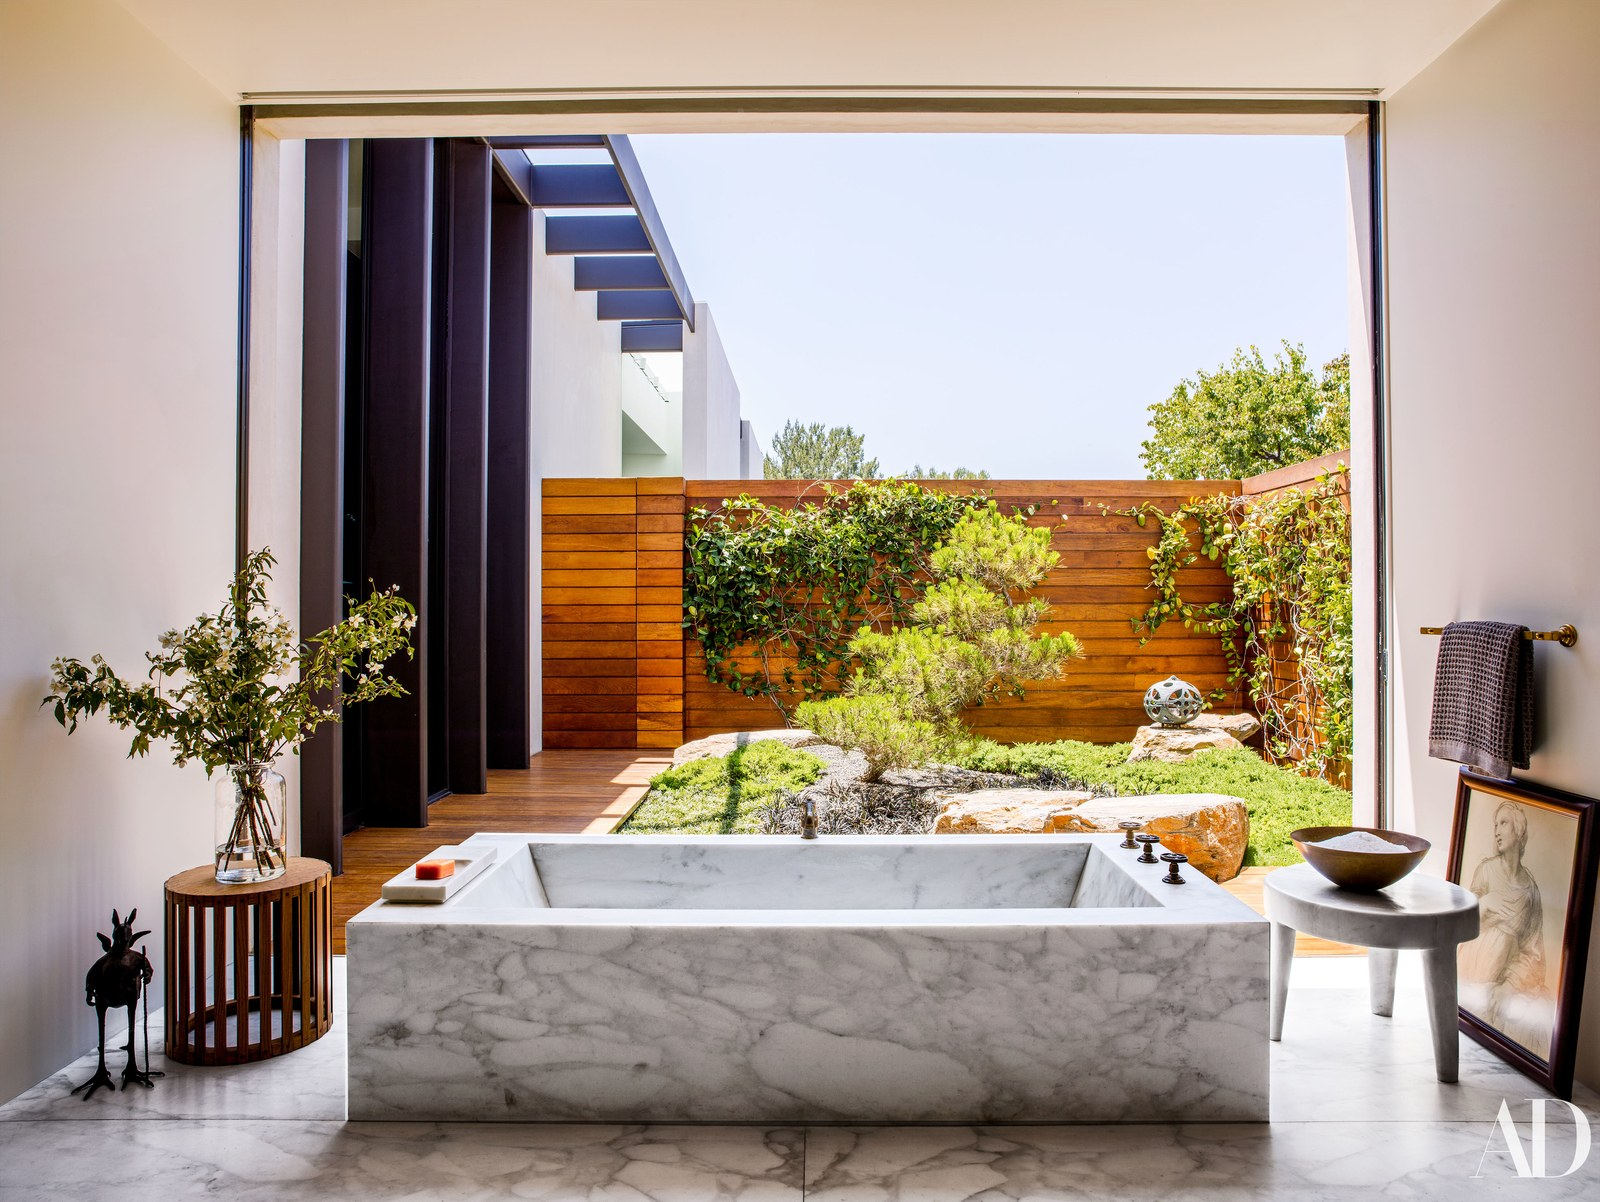 5 Celebrity Bathrooms You Need To See celebrity bedrooms 5 Celebrity Bedrooms That Will Blow Your Mind celebrity homes celebrity bedrooms 5 Celebrity Bedrooms That Will Blow Your Mind celebrity homes